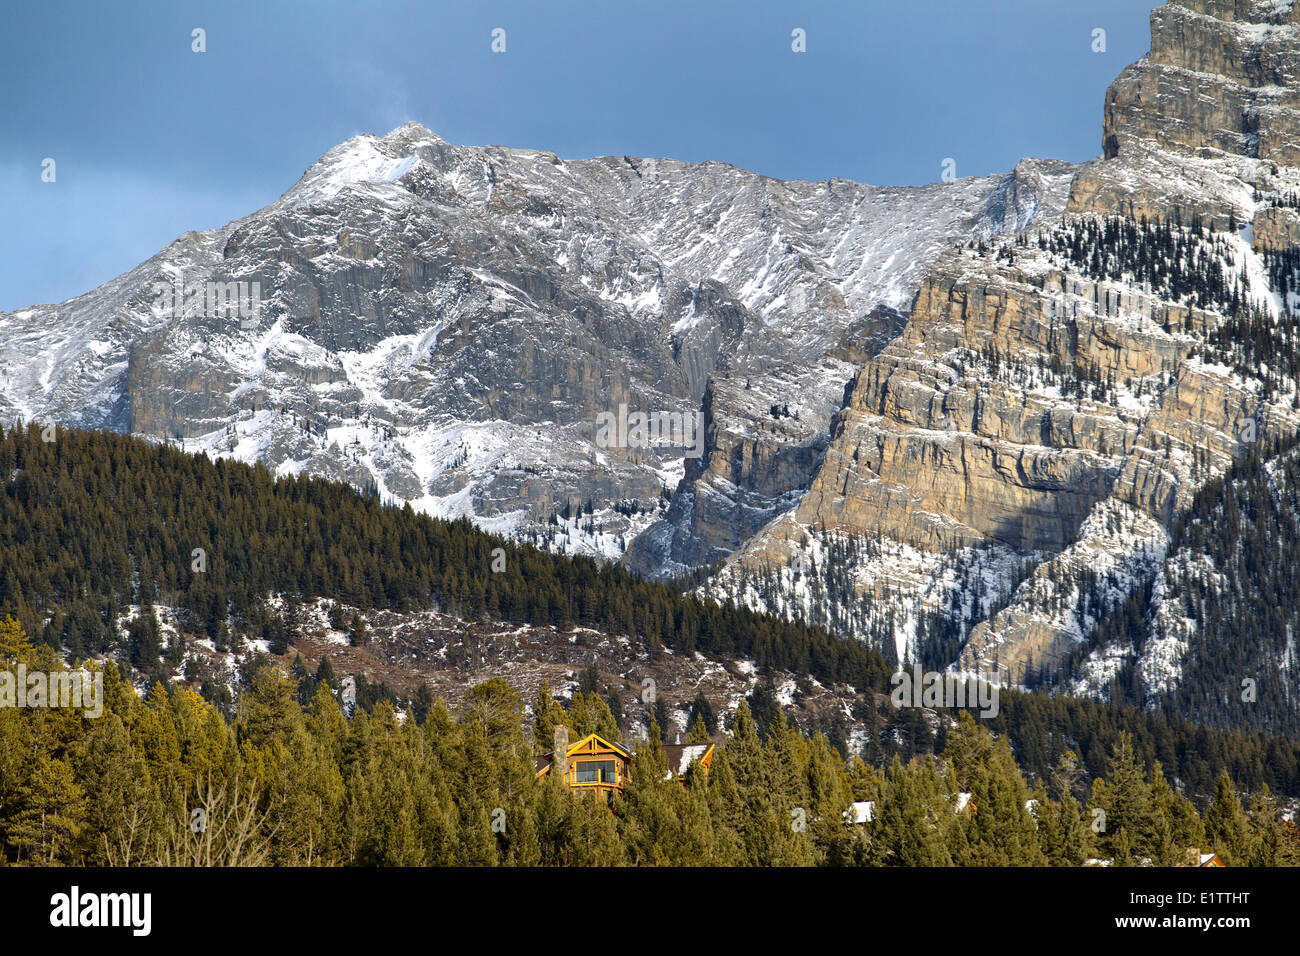 Chalet in front of Mount Norquay, Banff national park, Alberta, Canada - Stock Image